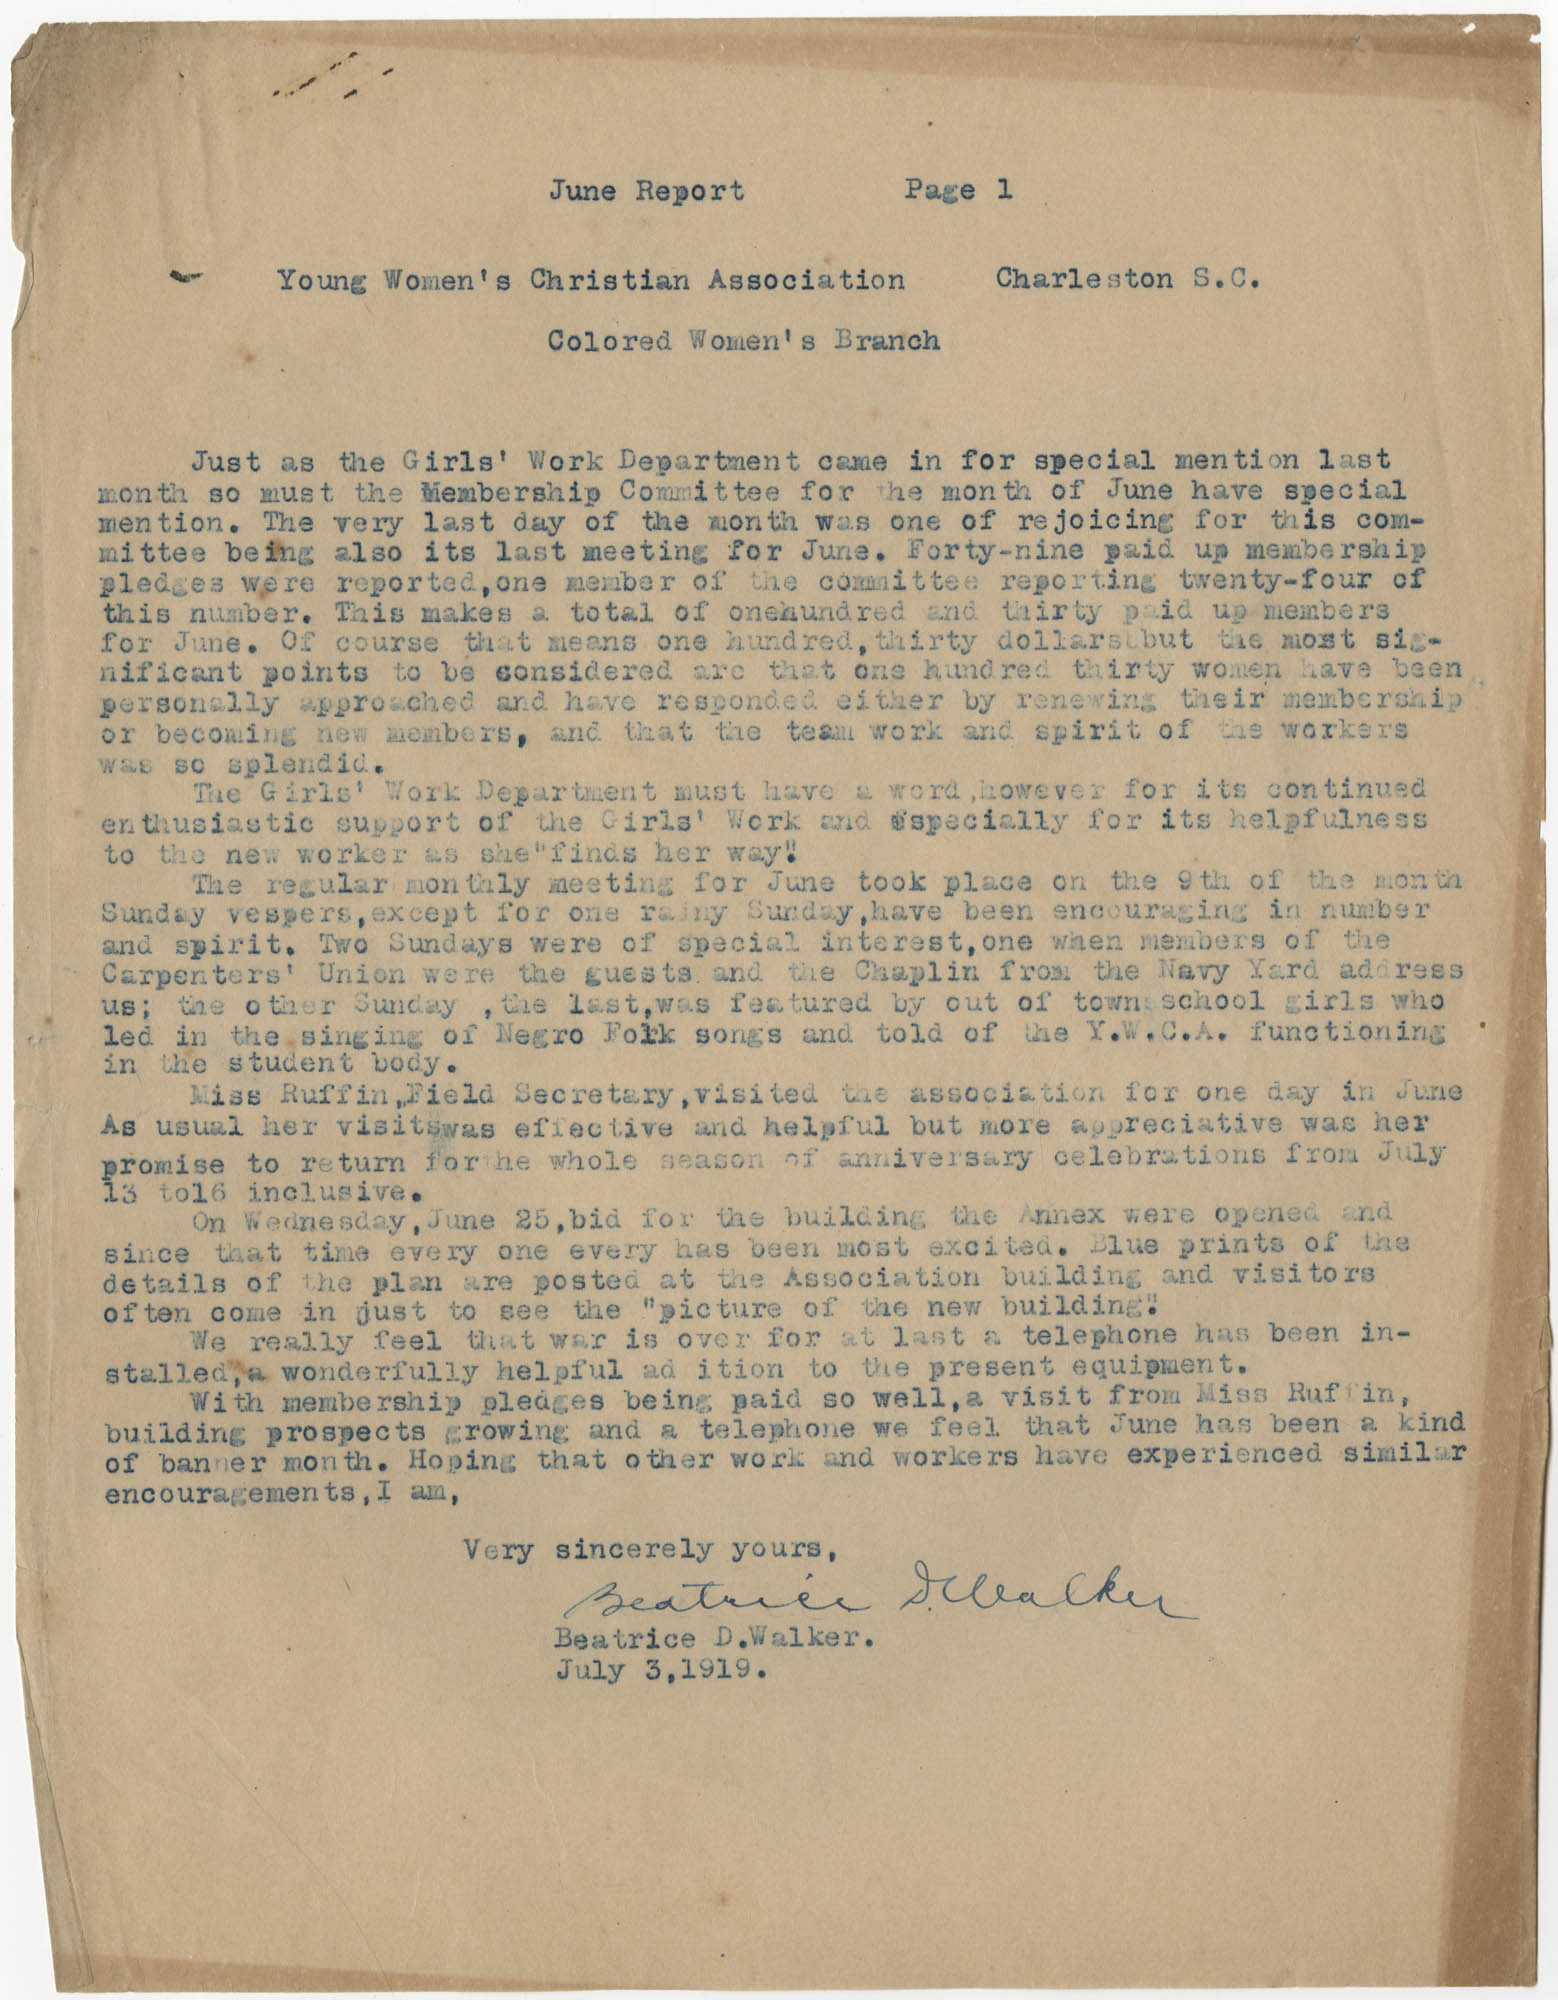 Coming Street Y.W.C.A. Report for June 1919